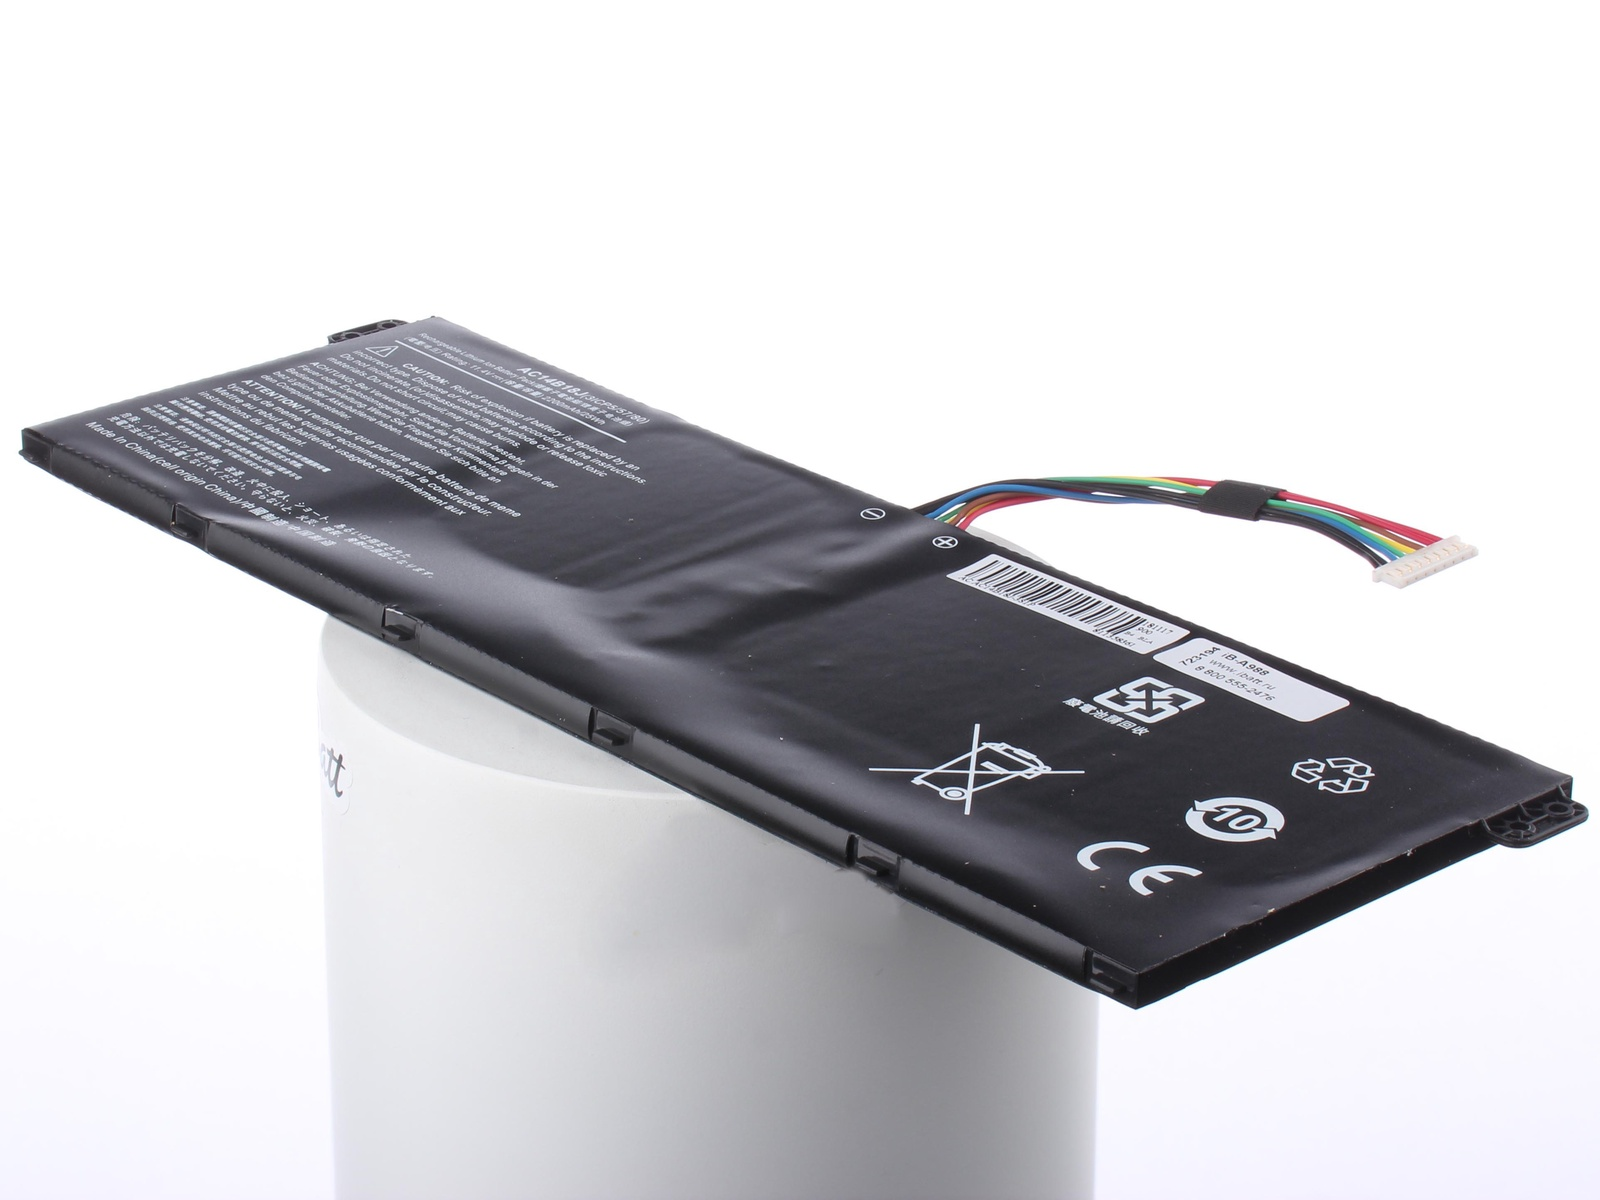 Аккумуляторная батарея iBatt iB-T3-A988 3220mAh для ноутбуков Acer Aspire ES1-331-P3WA, Aspire ES1-331-C1K0, Aspire ES1-731G-C7U8, Aspire ES1-731G-P11W, ASPIRE ES1-531-P1L8, ASPIRE ES1-531-P547, ASPIRE ES1-531-C9JA, ASPIRE ES1-531-C9Q3, for acer aspire es1 531 n15w4 screen matrix for laptop 15 6 edp 30 pin led display